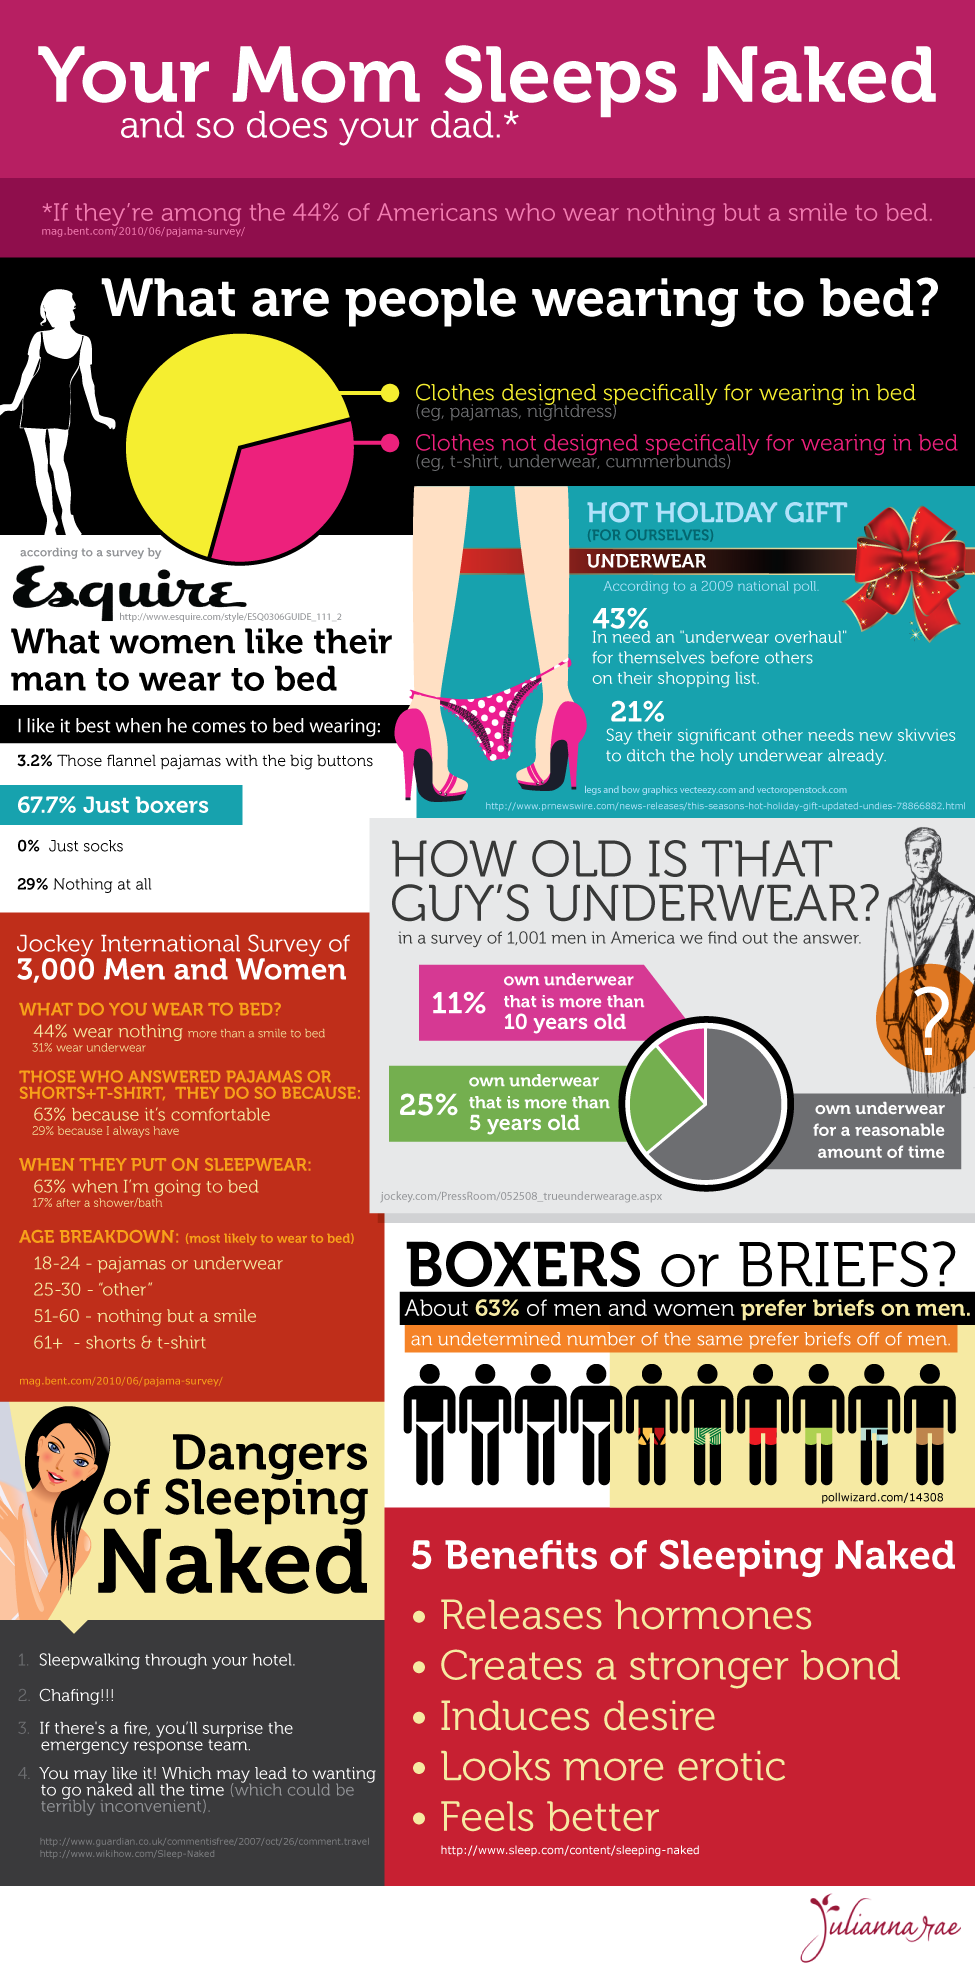 What People Wear to Bed Infographic